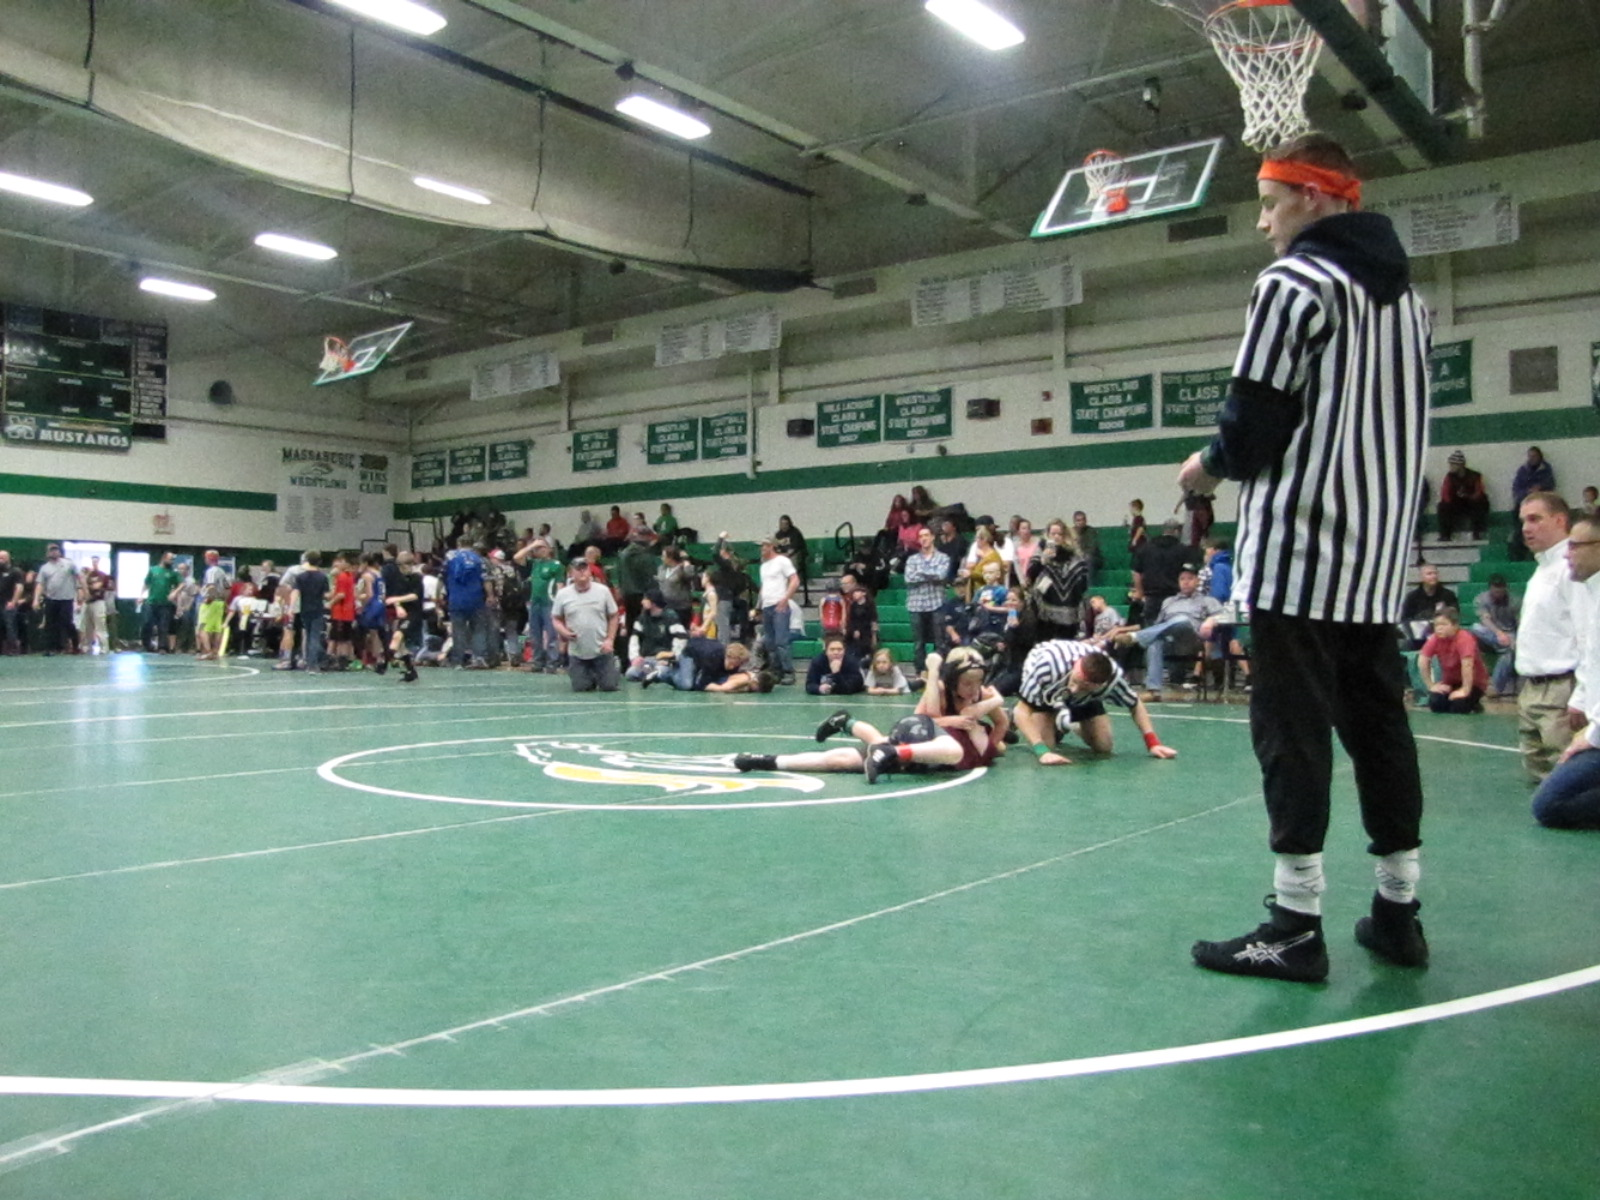 TAYLOR MORRISON/JOURNAL TRIBUNEYoung wrestlers at the Alex Holland Pre-Season Youth Wrestling Tournament. More than 16 teams gathered at the tournament, hosted by the Massabesic Youth Wrestling Club at Massabesic High School, Sunday, Jan. 8, 2017.